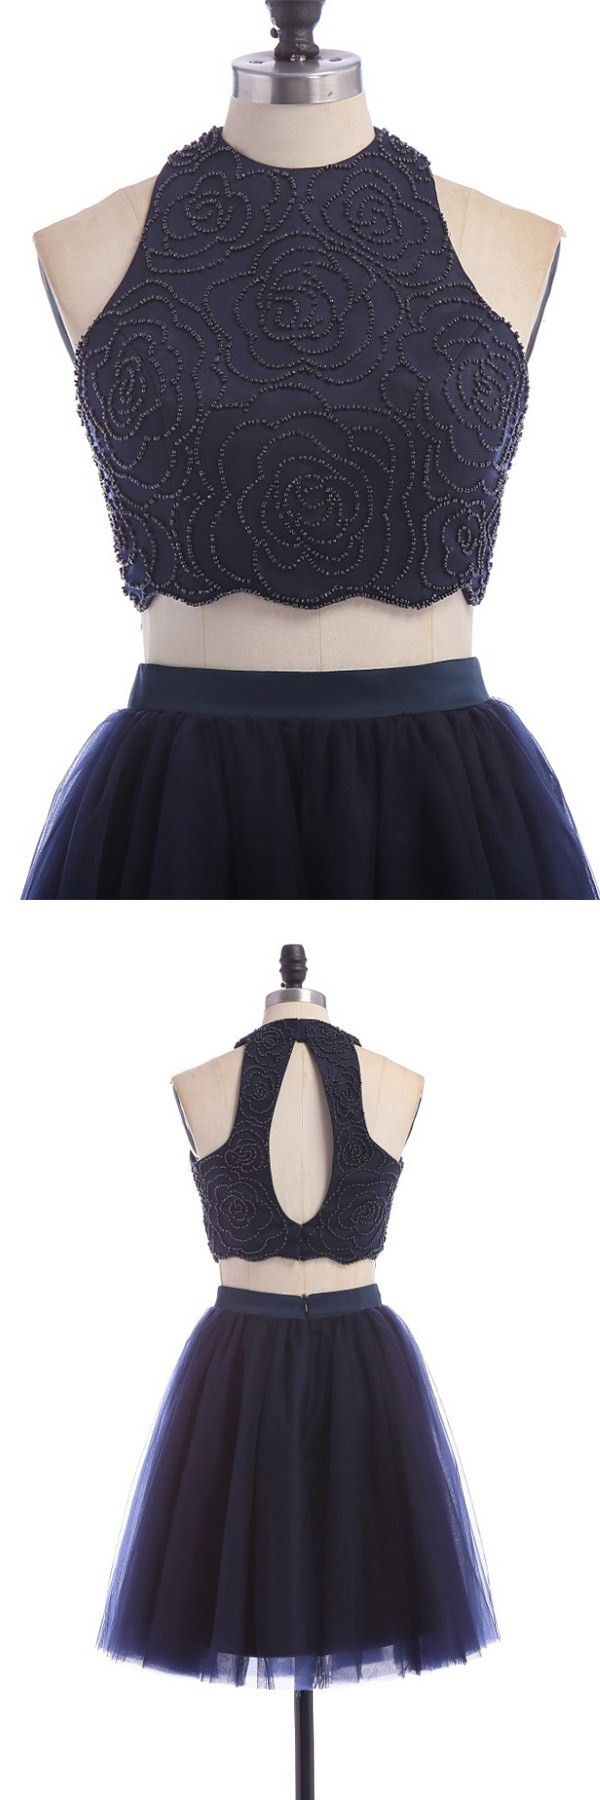 2016 homecoming dress,homecoming dresses,chic homecoming dresses,two-piece homecoming dresses,fancy navy two-pieces hoco dresses,halter open back hoco party dresses,teen fashion